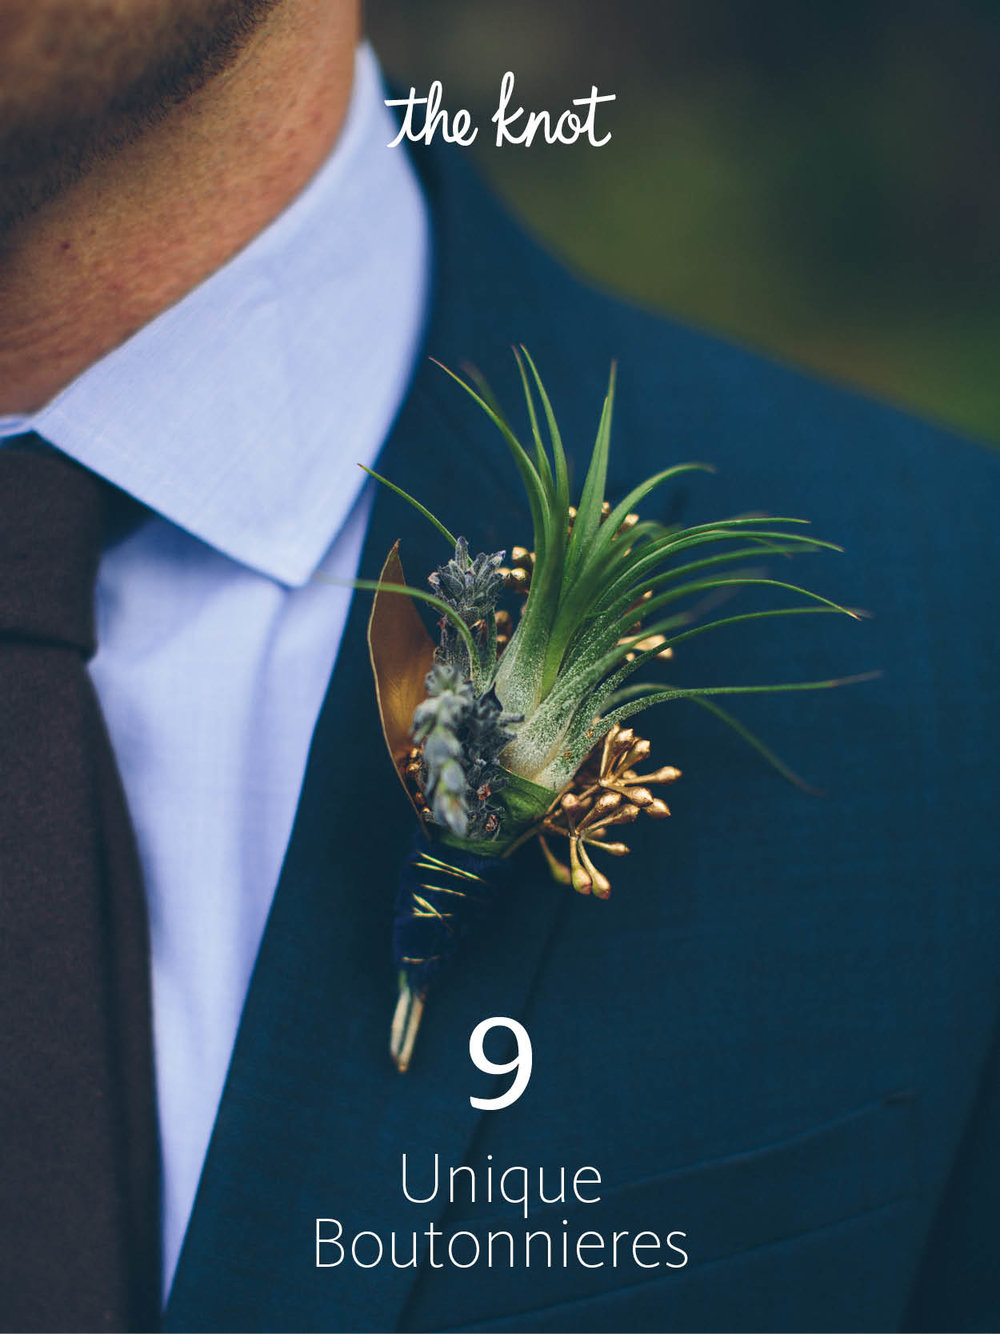 9+Unique+Boutonniers.jpg